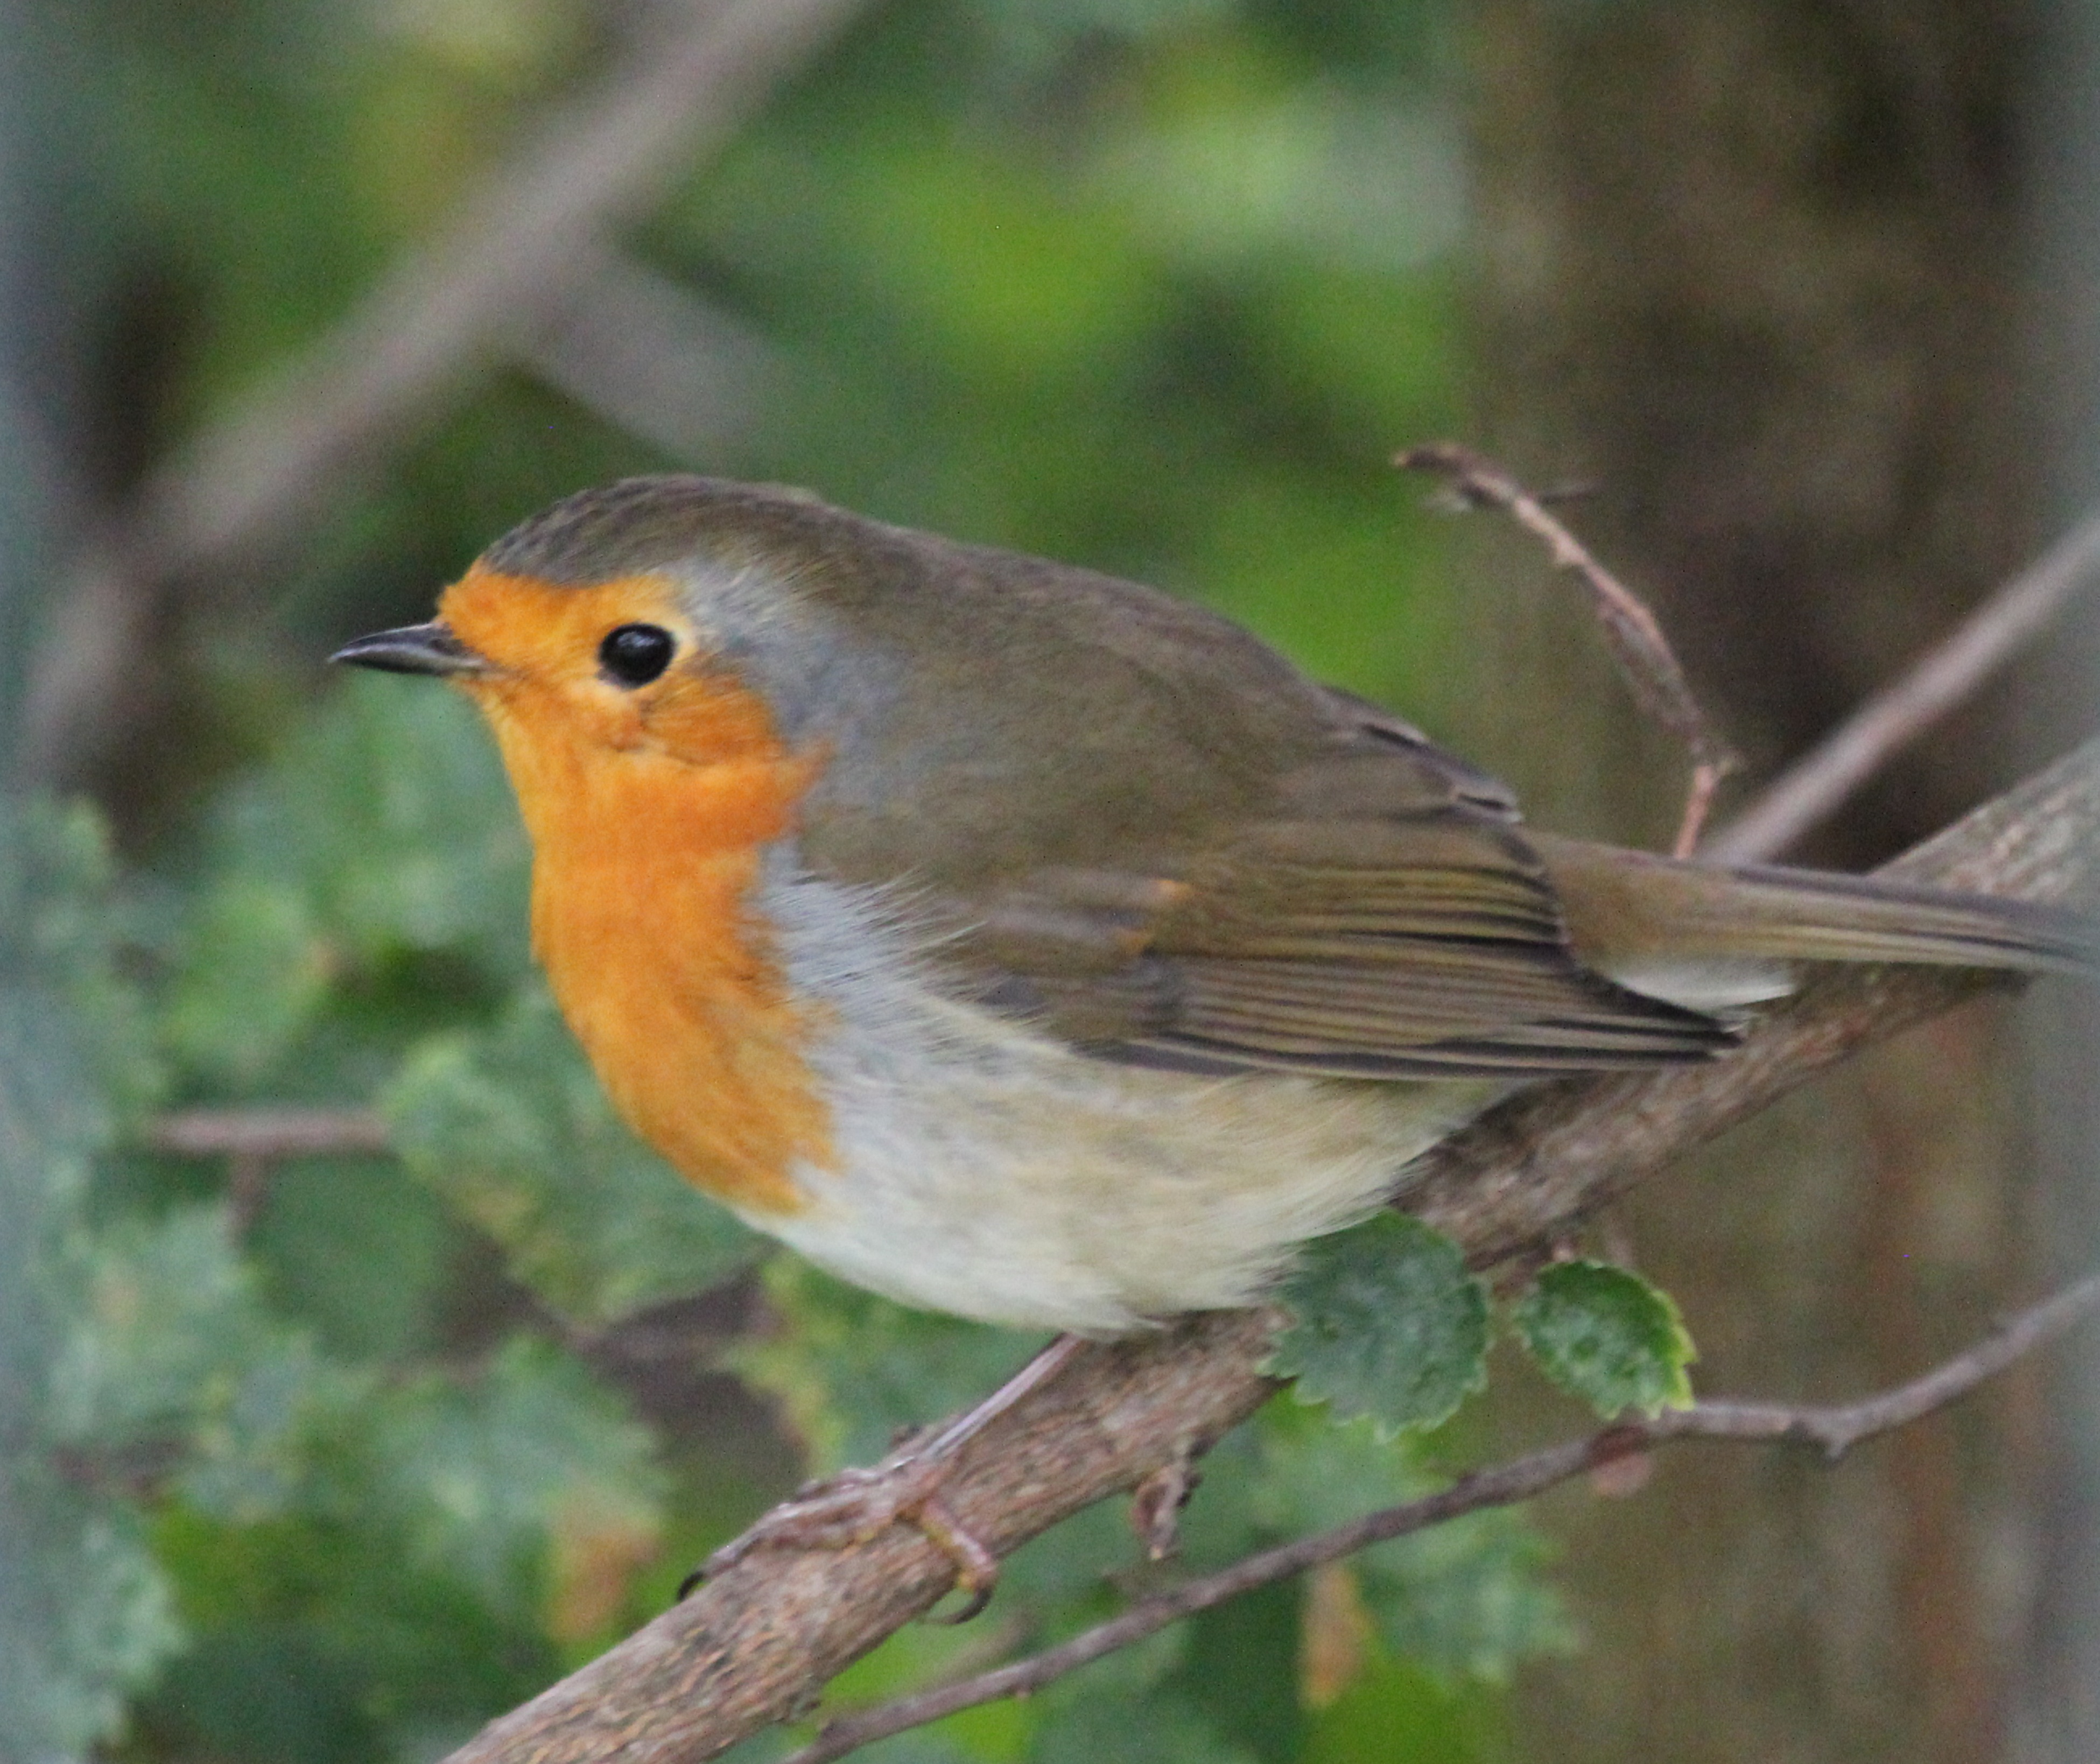 robins chat Robin chat definition is - any of various african thrushes of cossypha and closely related genera that are slaty blue with orange breasts.